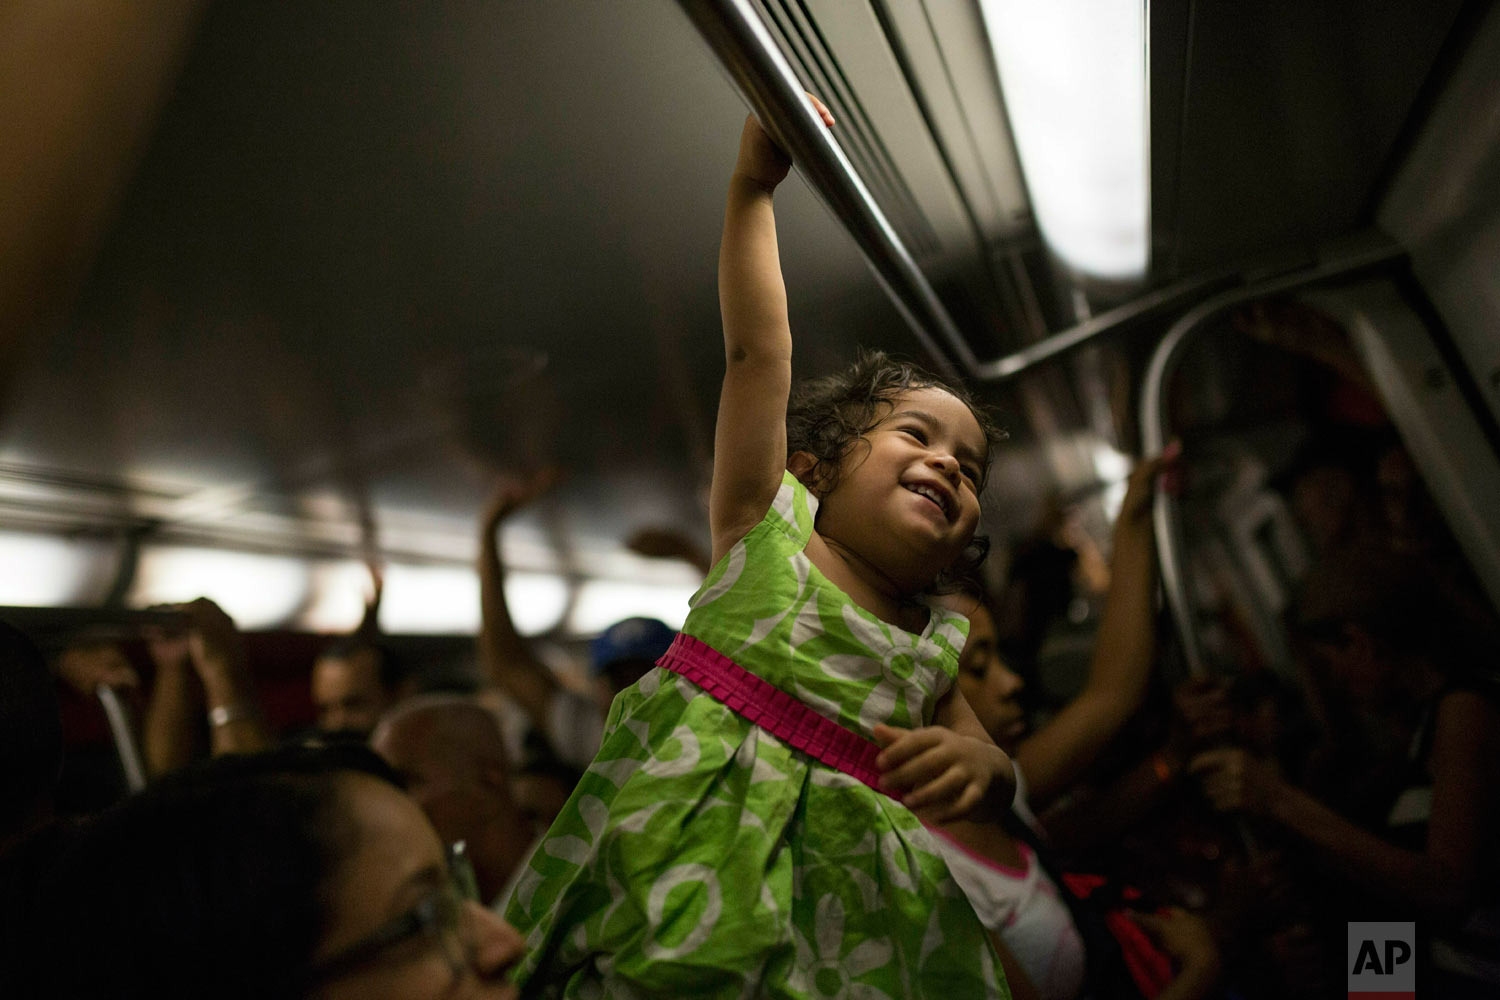 A girl plays while commuting with her mother in the subway in Caracas, Venezuela, Friday, May 10, 2019. (AP Photo/Rodrigo Abd)